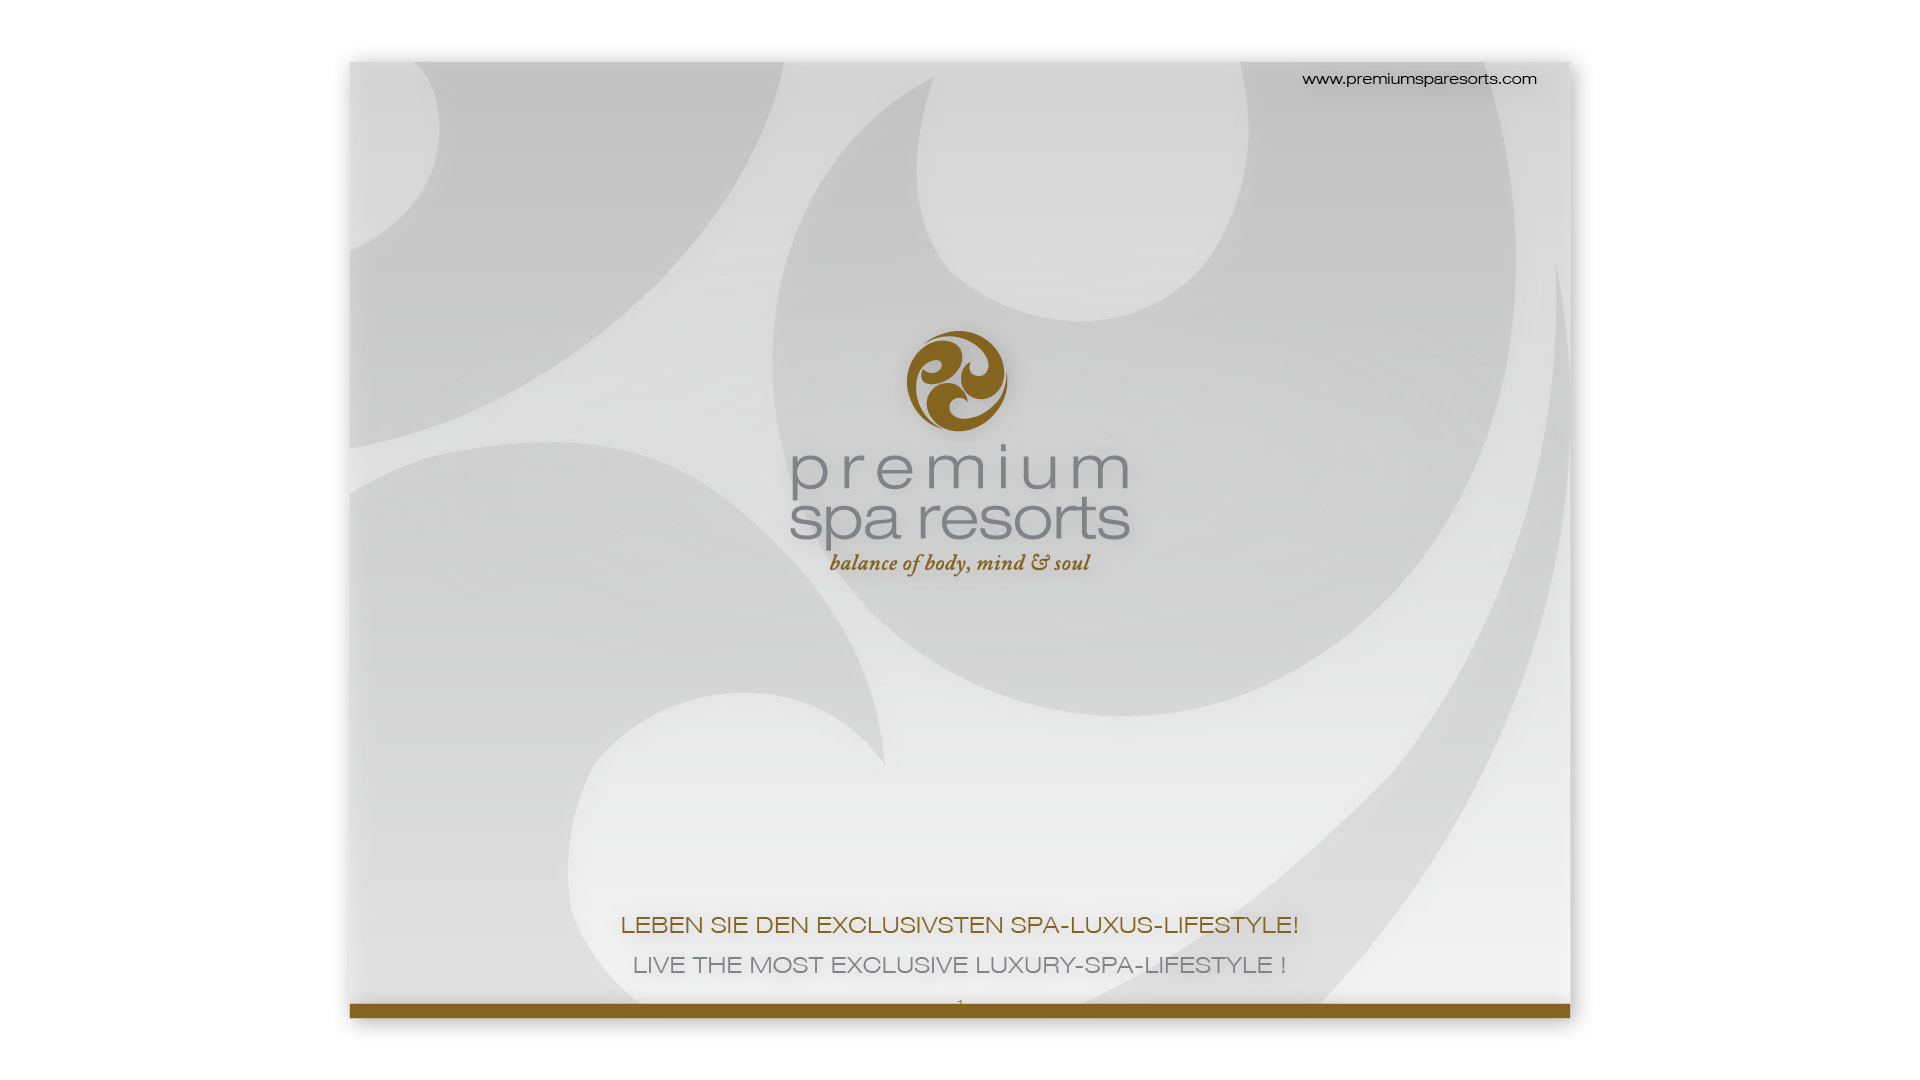 Premium Spa Resorts